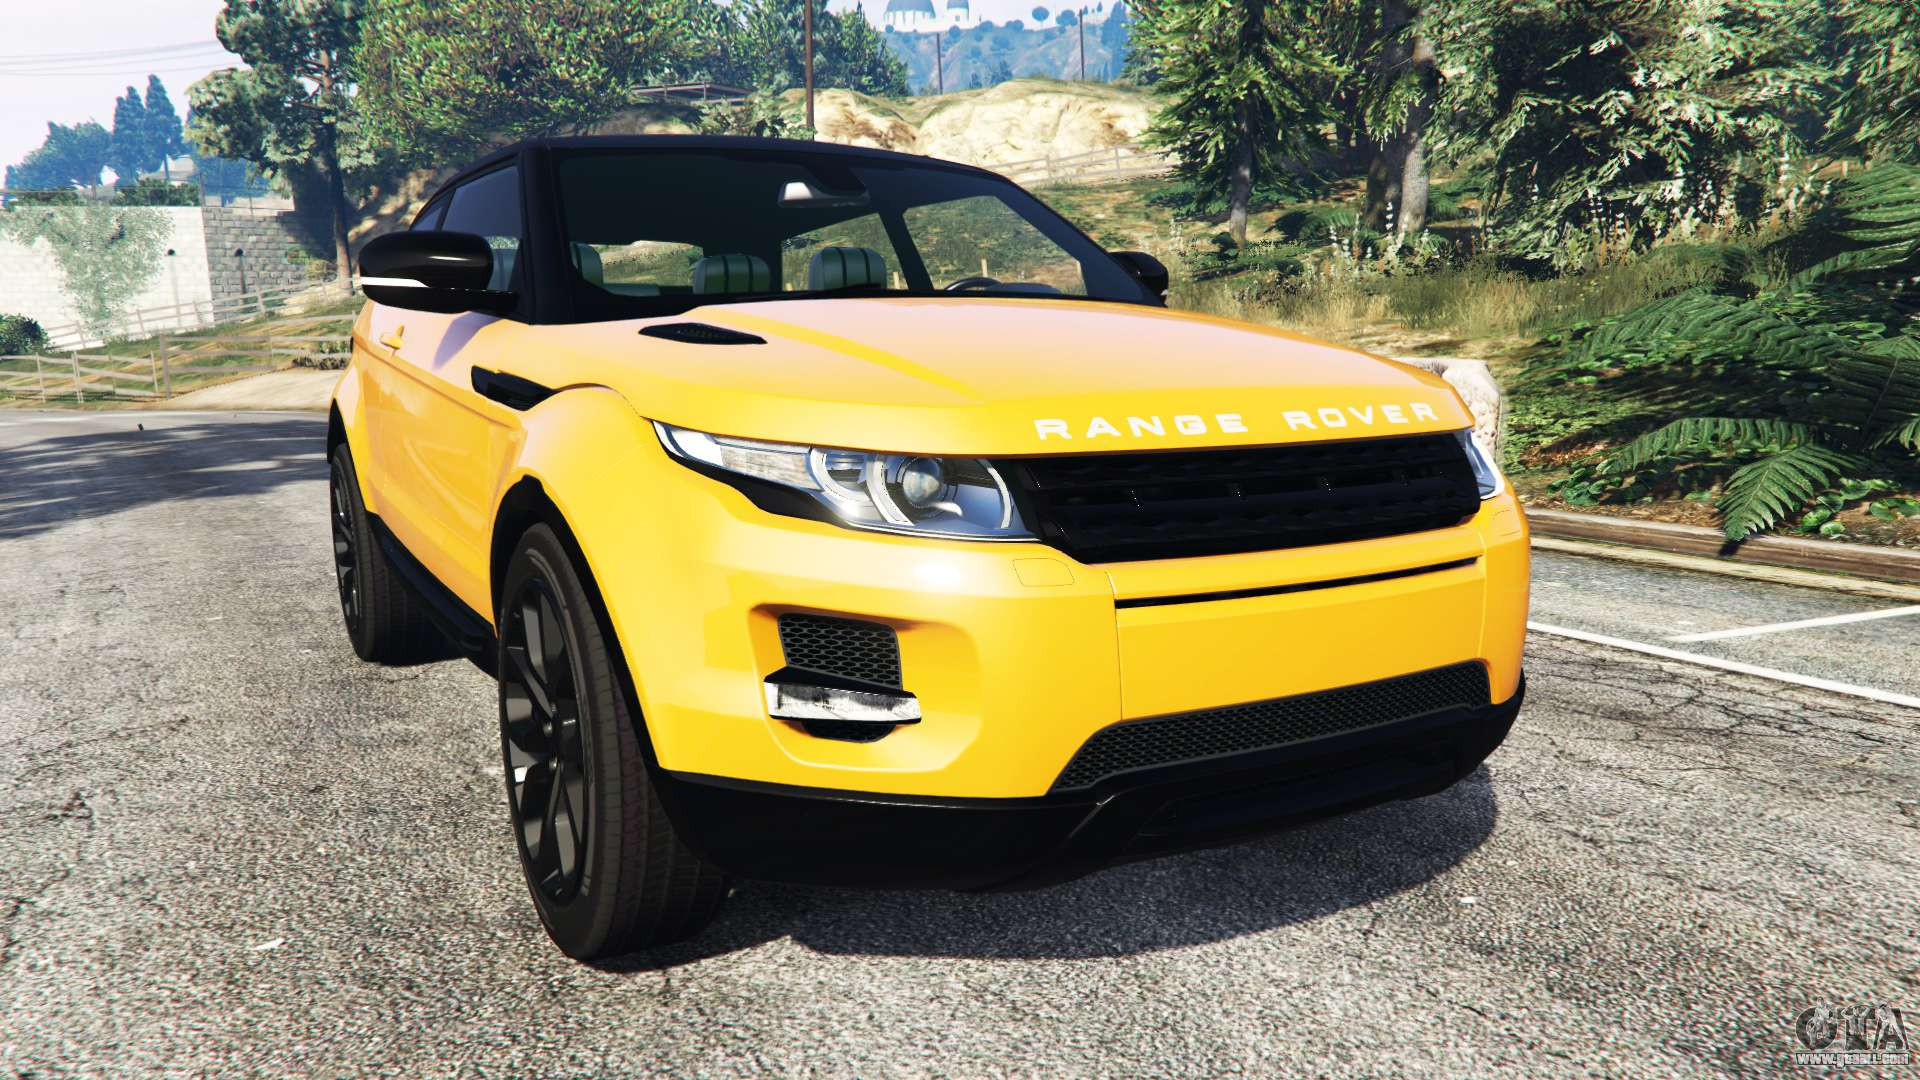 Gta on Range Rover Engine Replacement